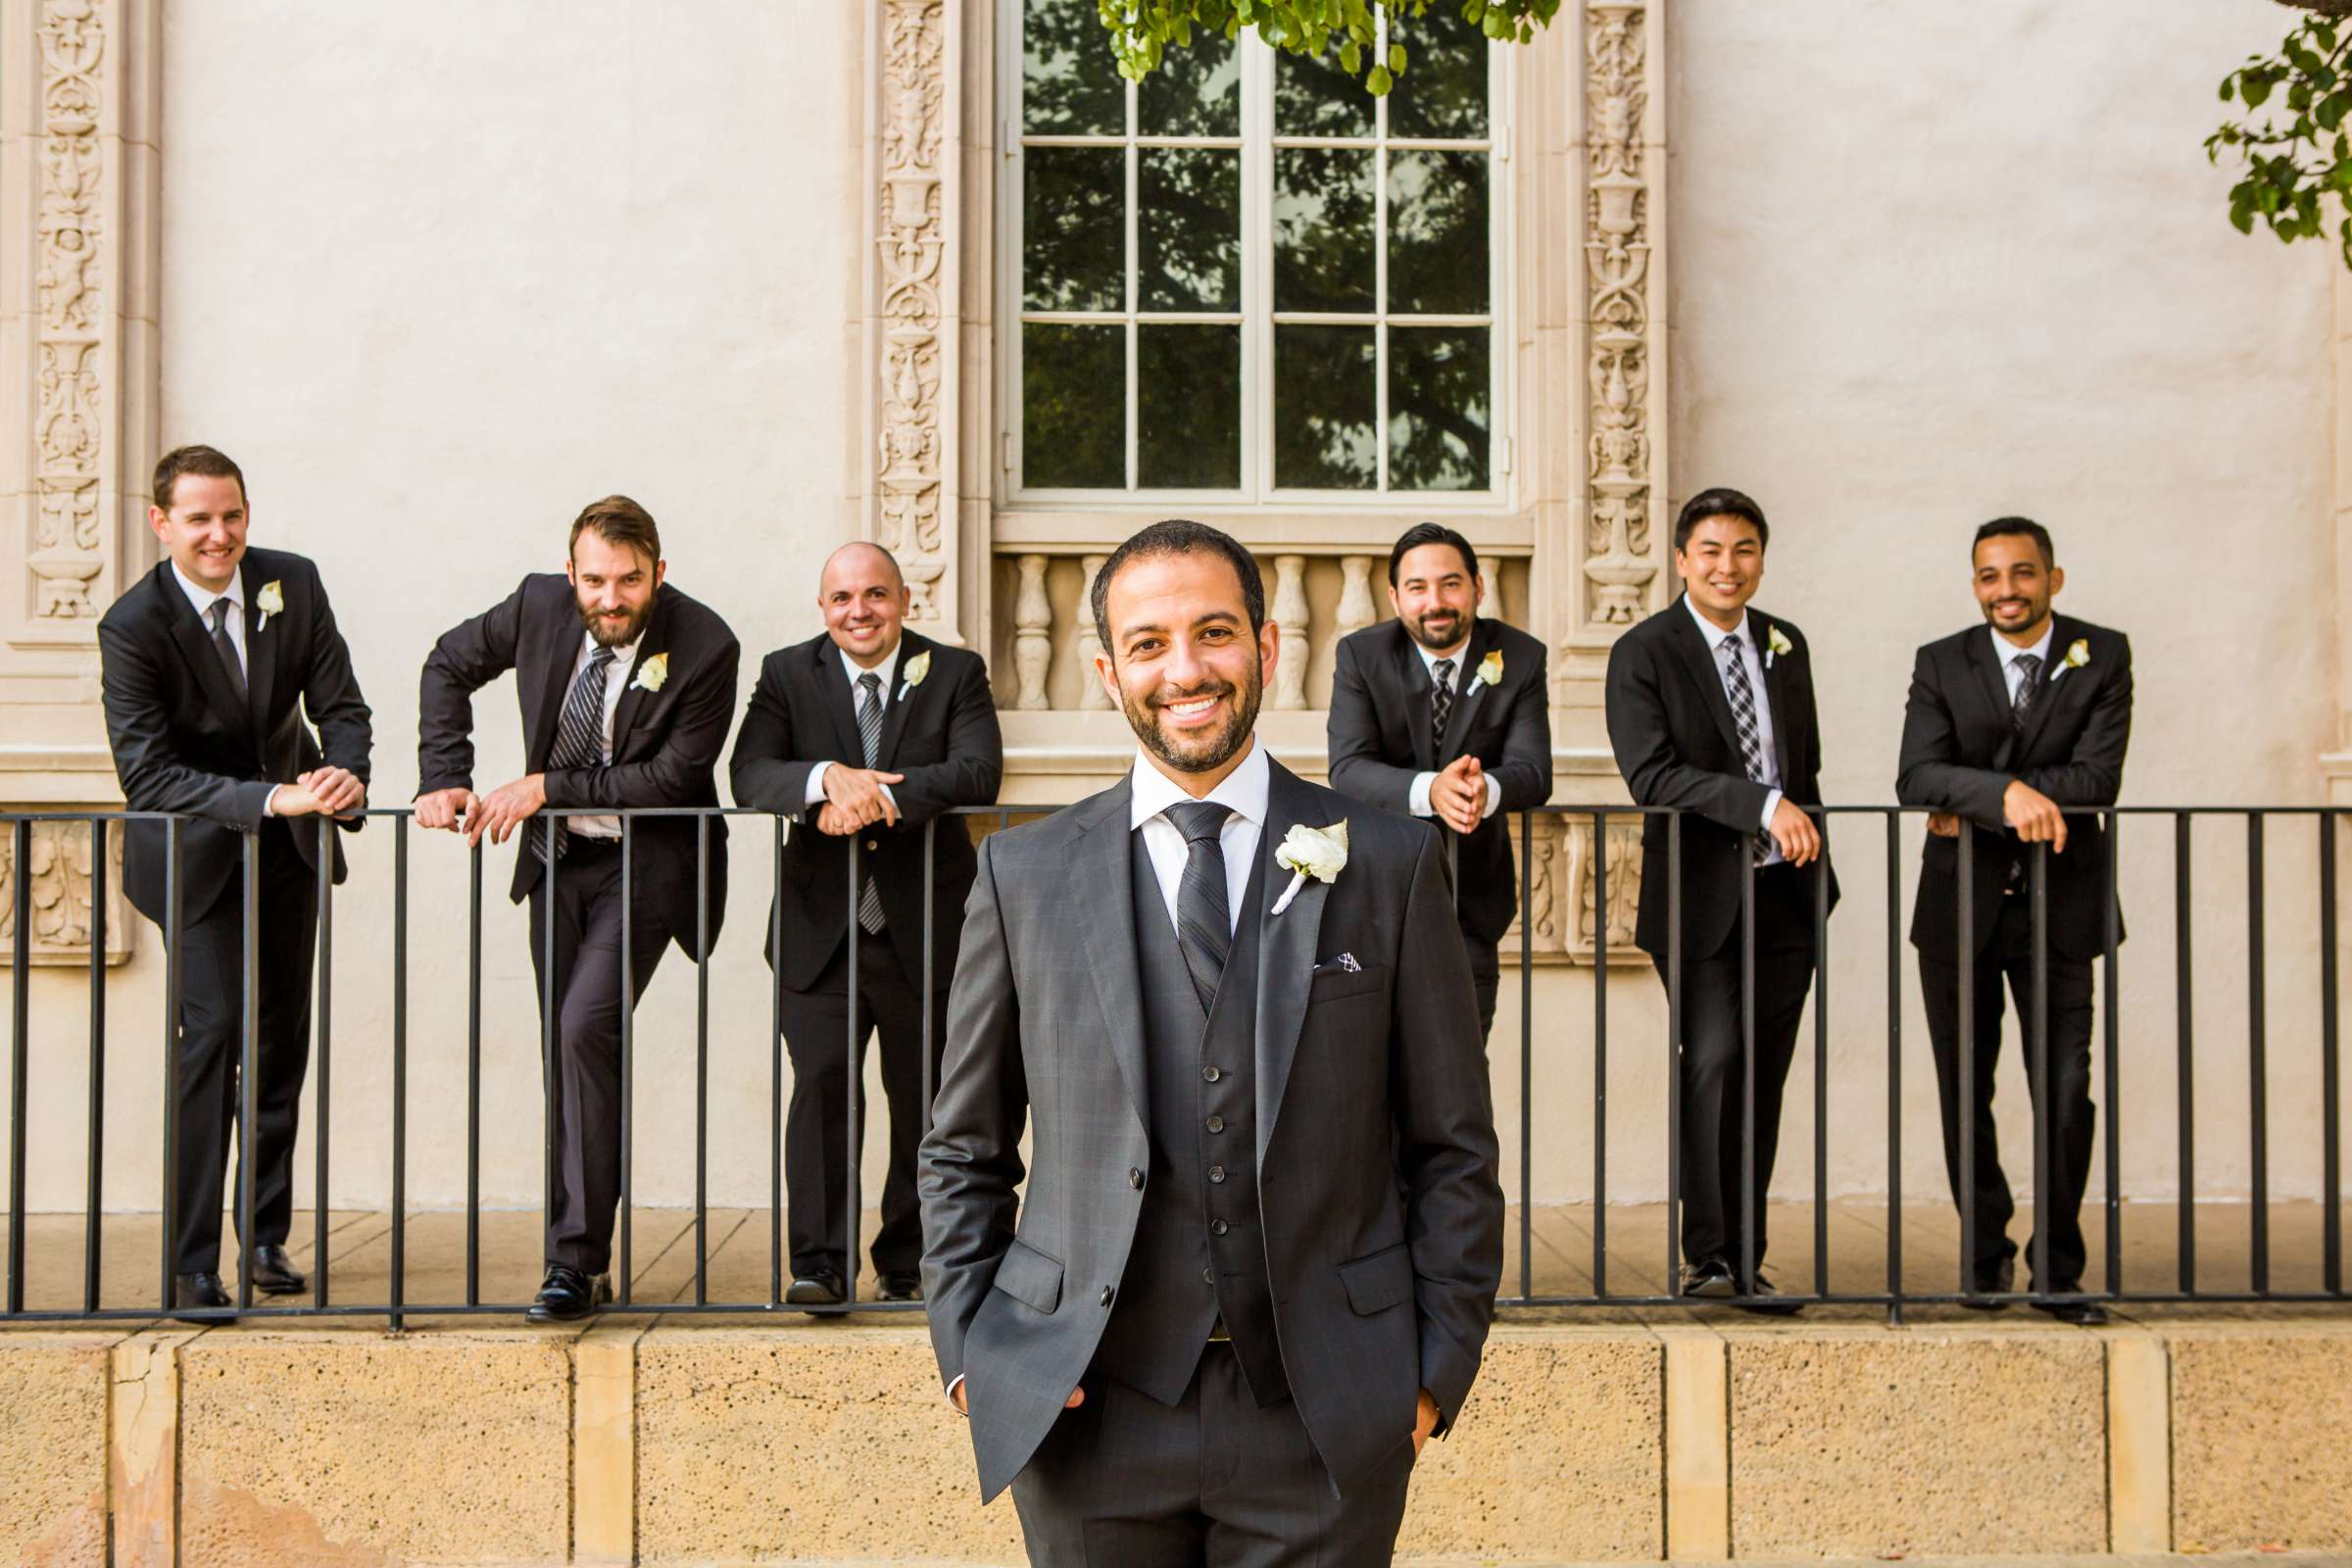 San Diego Museum of Art Wedding coordinated by First Comes Love Weddings & Events, Ruthie and Larry Wedding Photo #236779 by True Photography